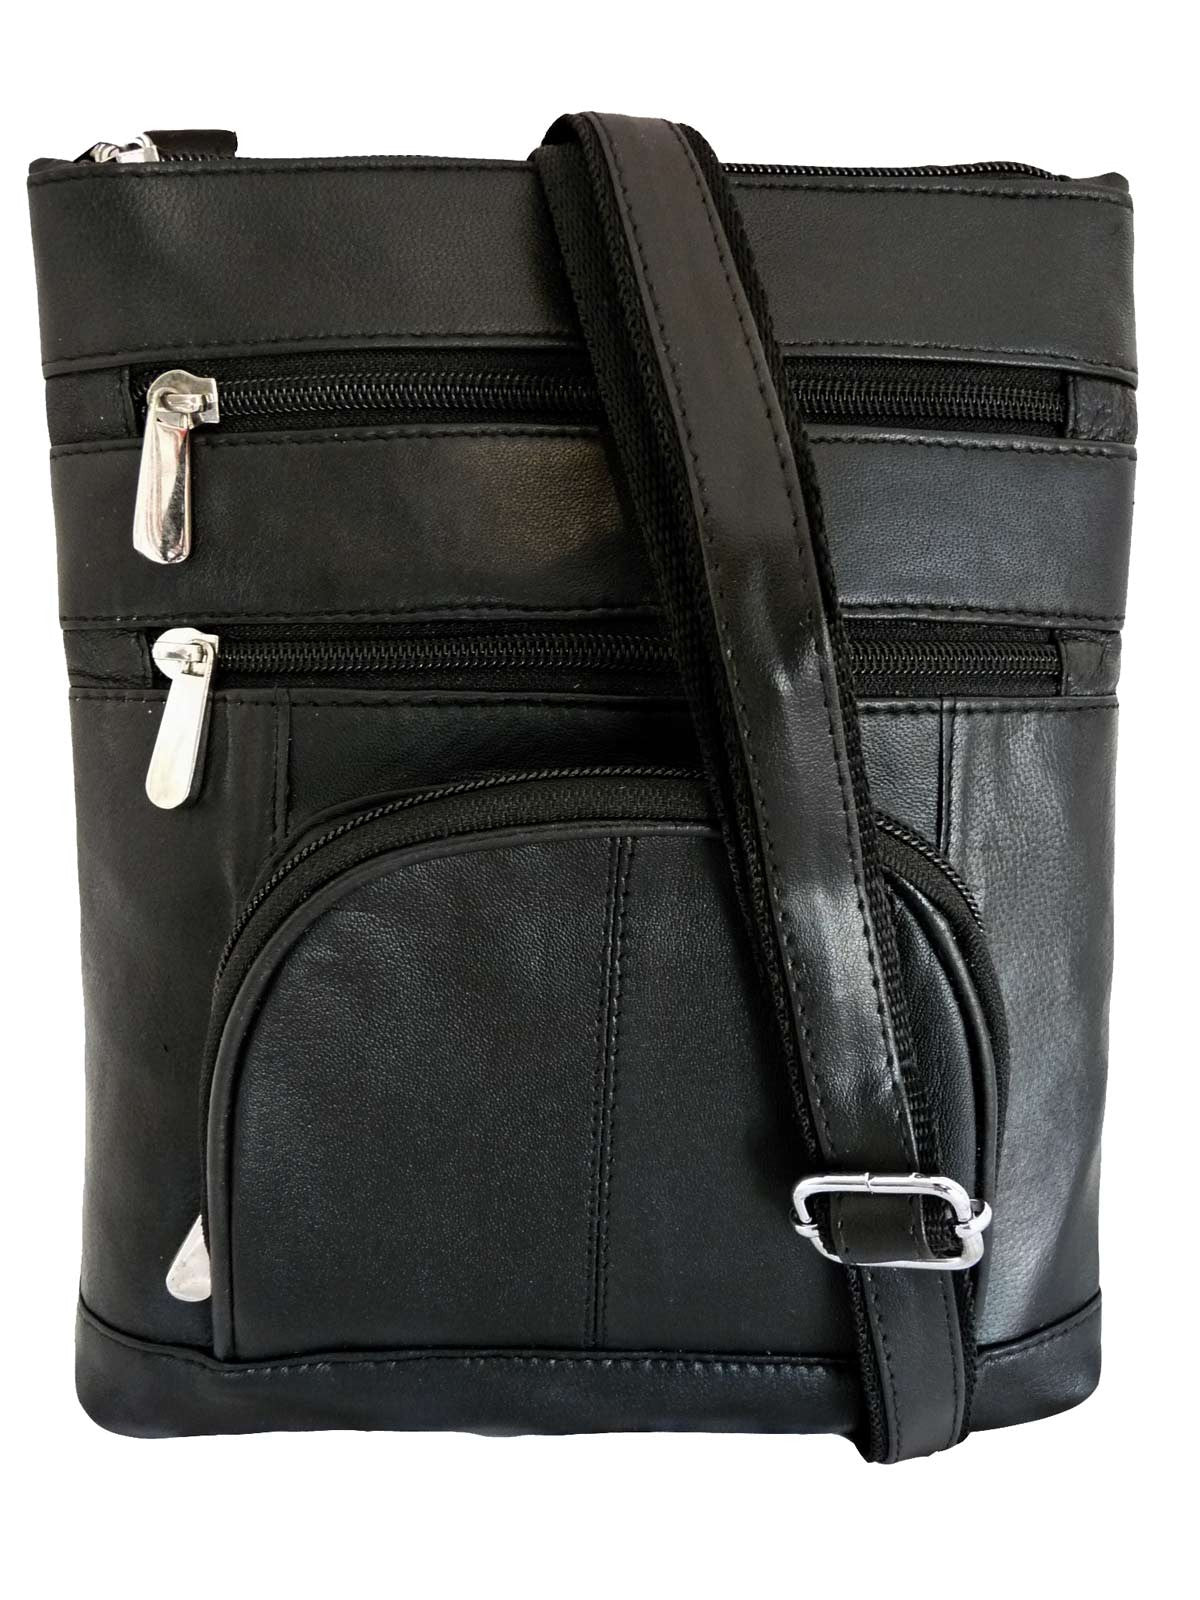 Mans leather shoulder bag RL177Kf